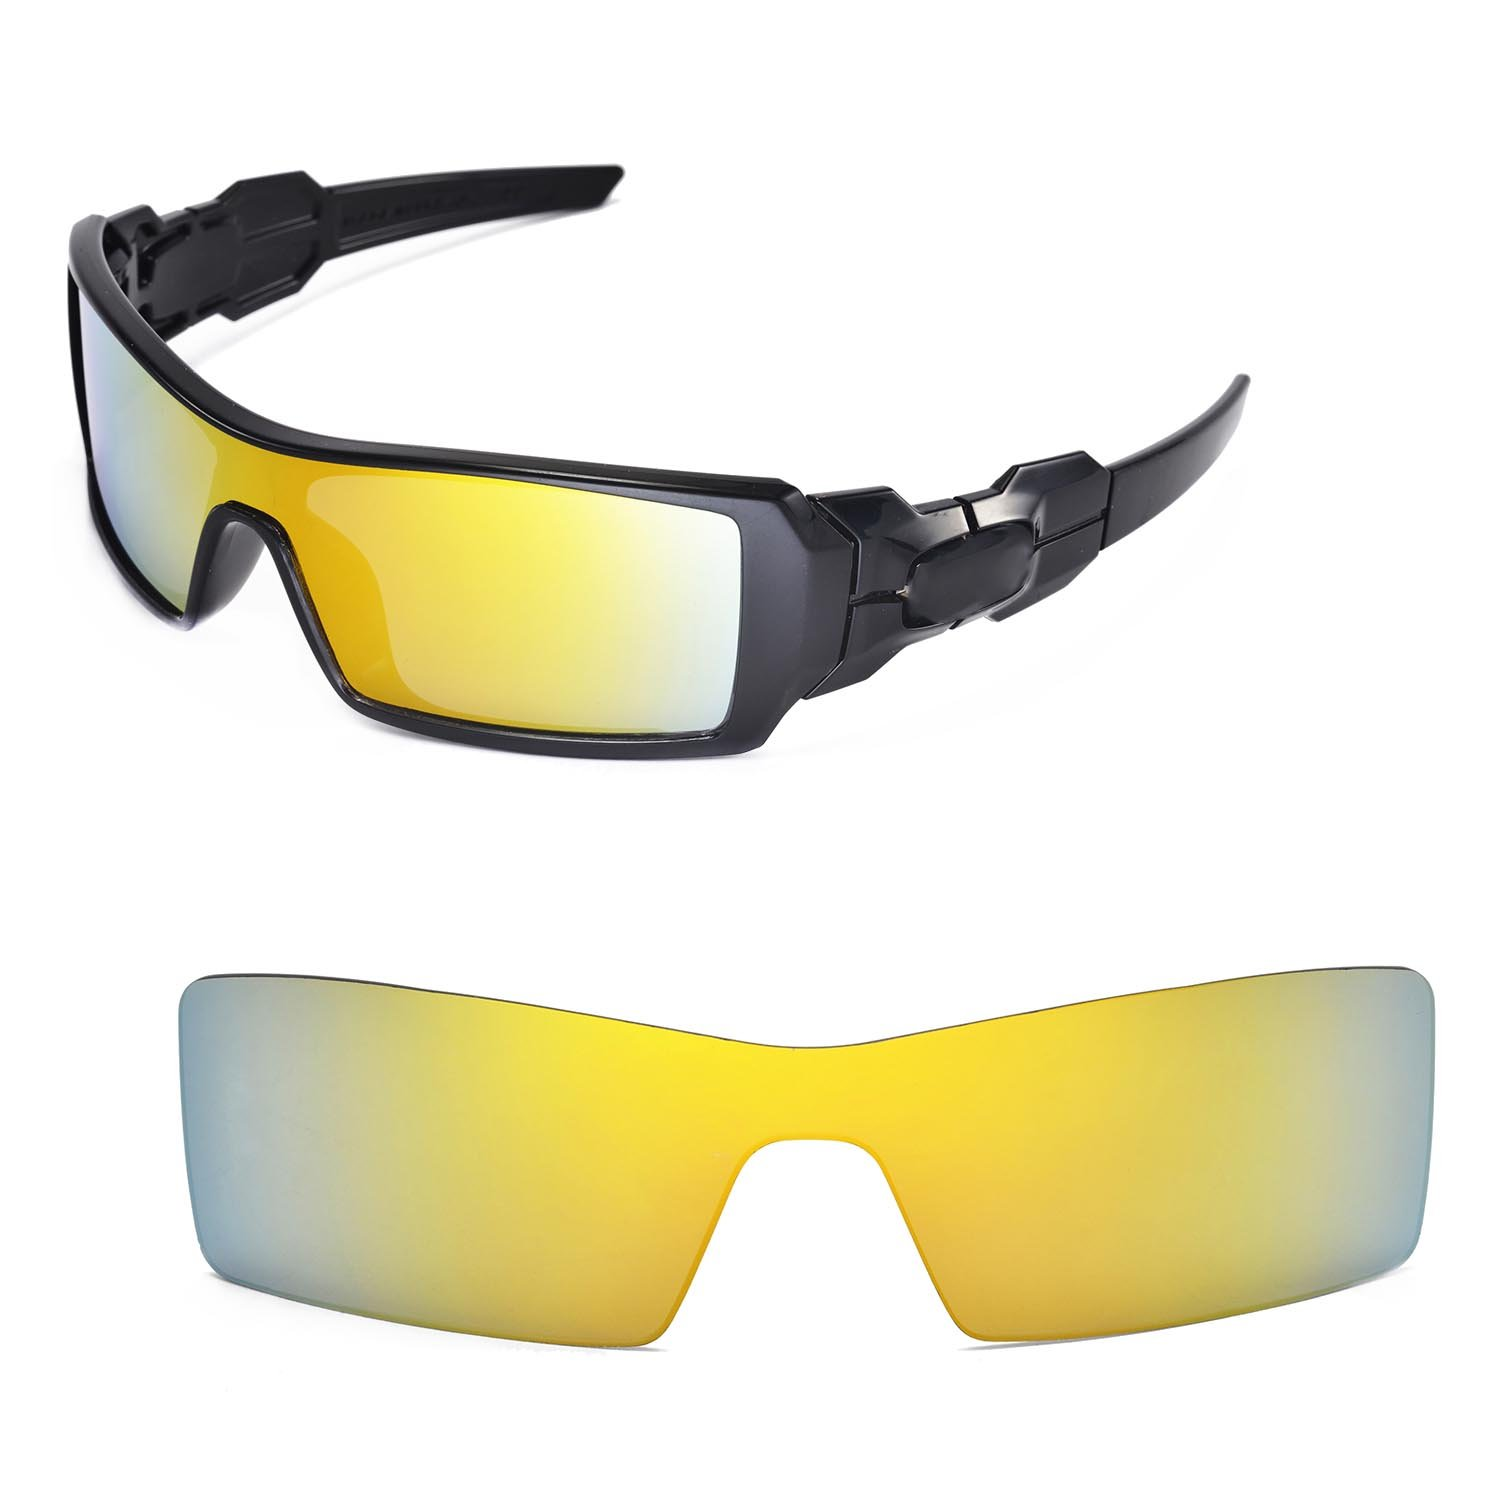 oakley oil rig sunglasses accessories  walleva replacement lenses for oakley oil rig sunglasses 15 options available